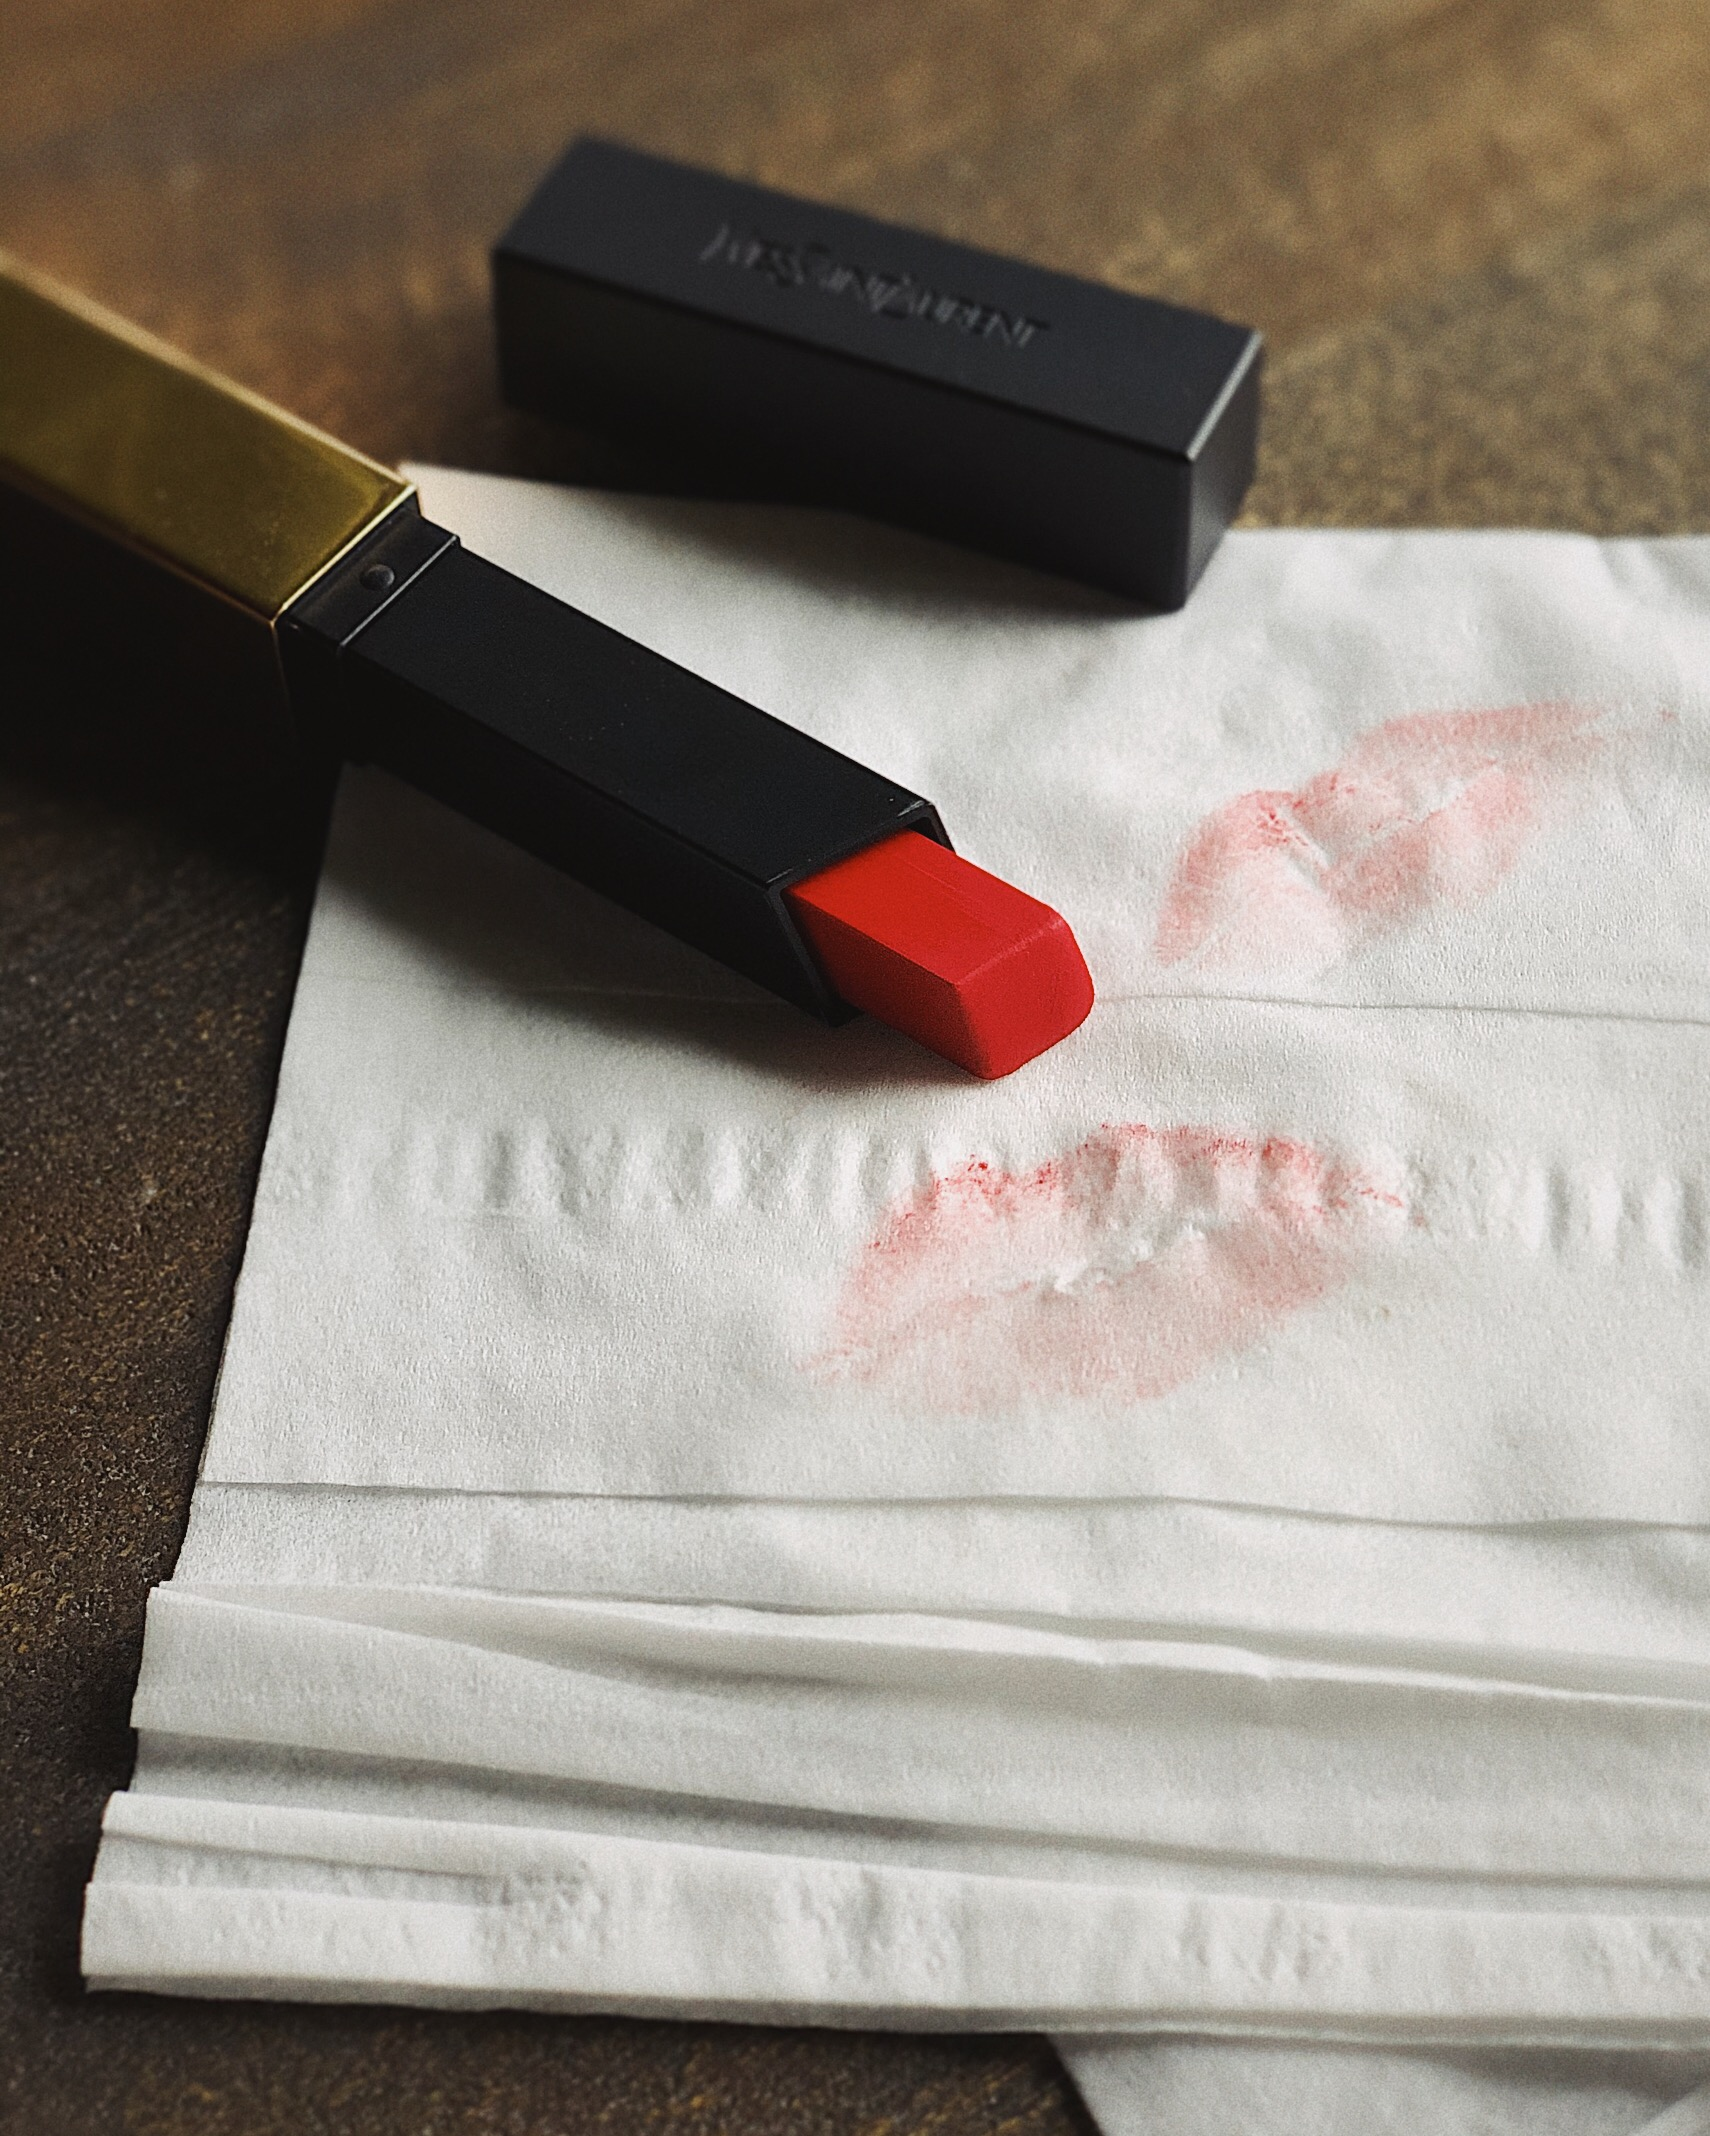 Building the confidence to wear red lipstick